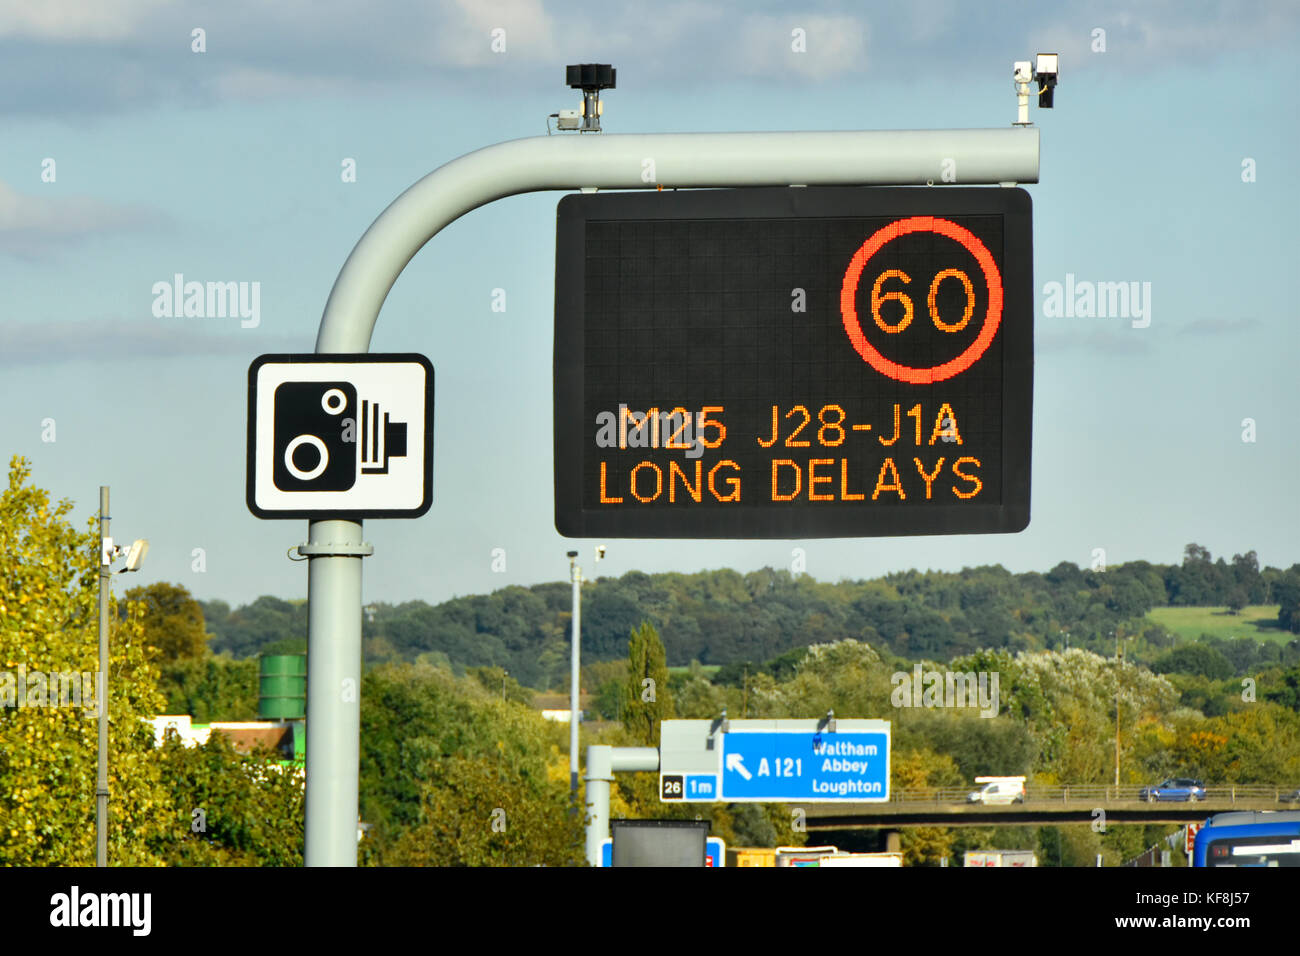 Single panel M25 motorway sign above lane one only, variable speed limit & short delay message complete with - Stock Image